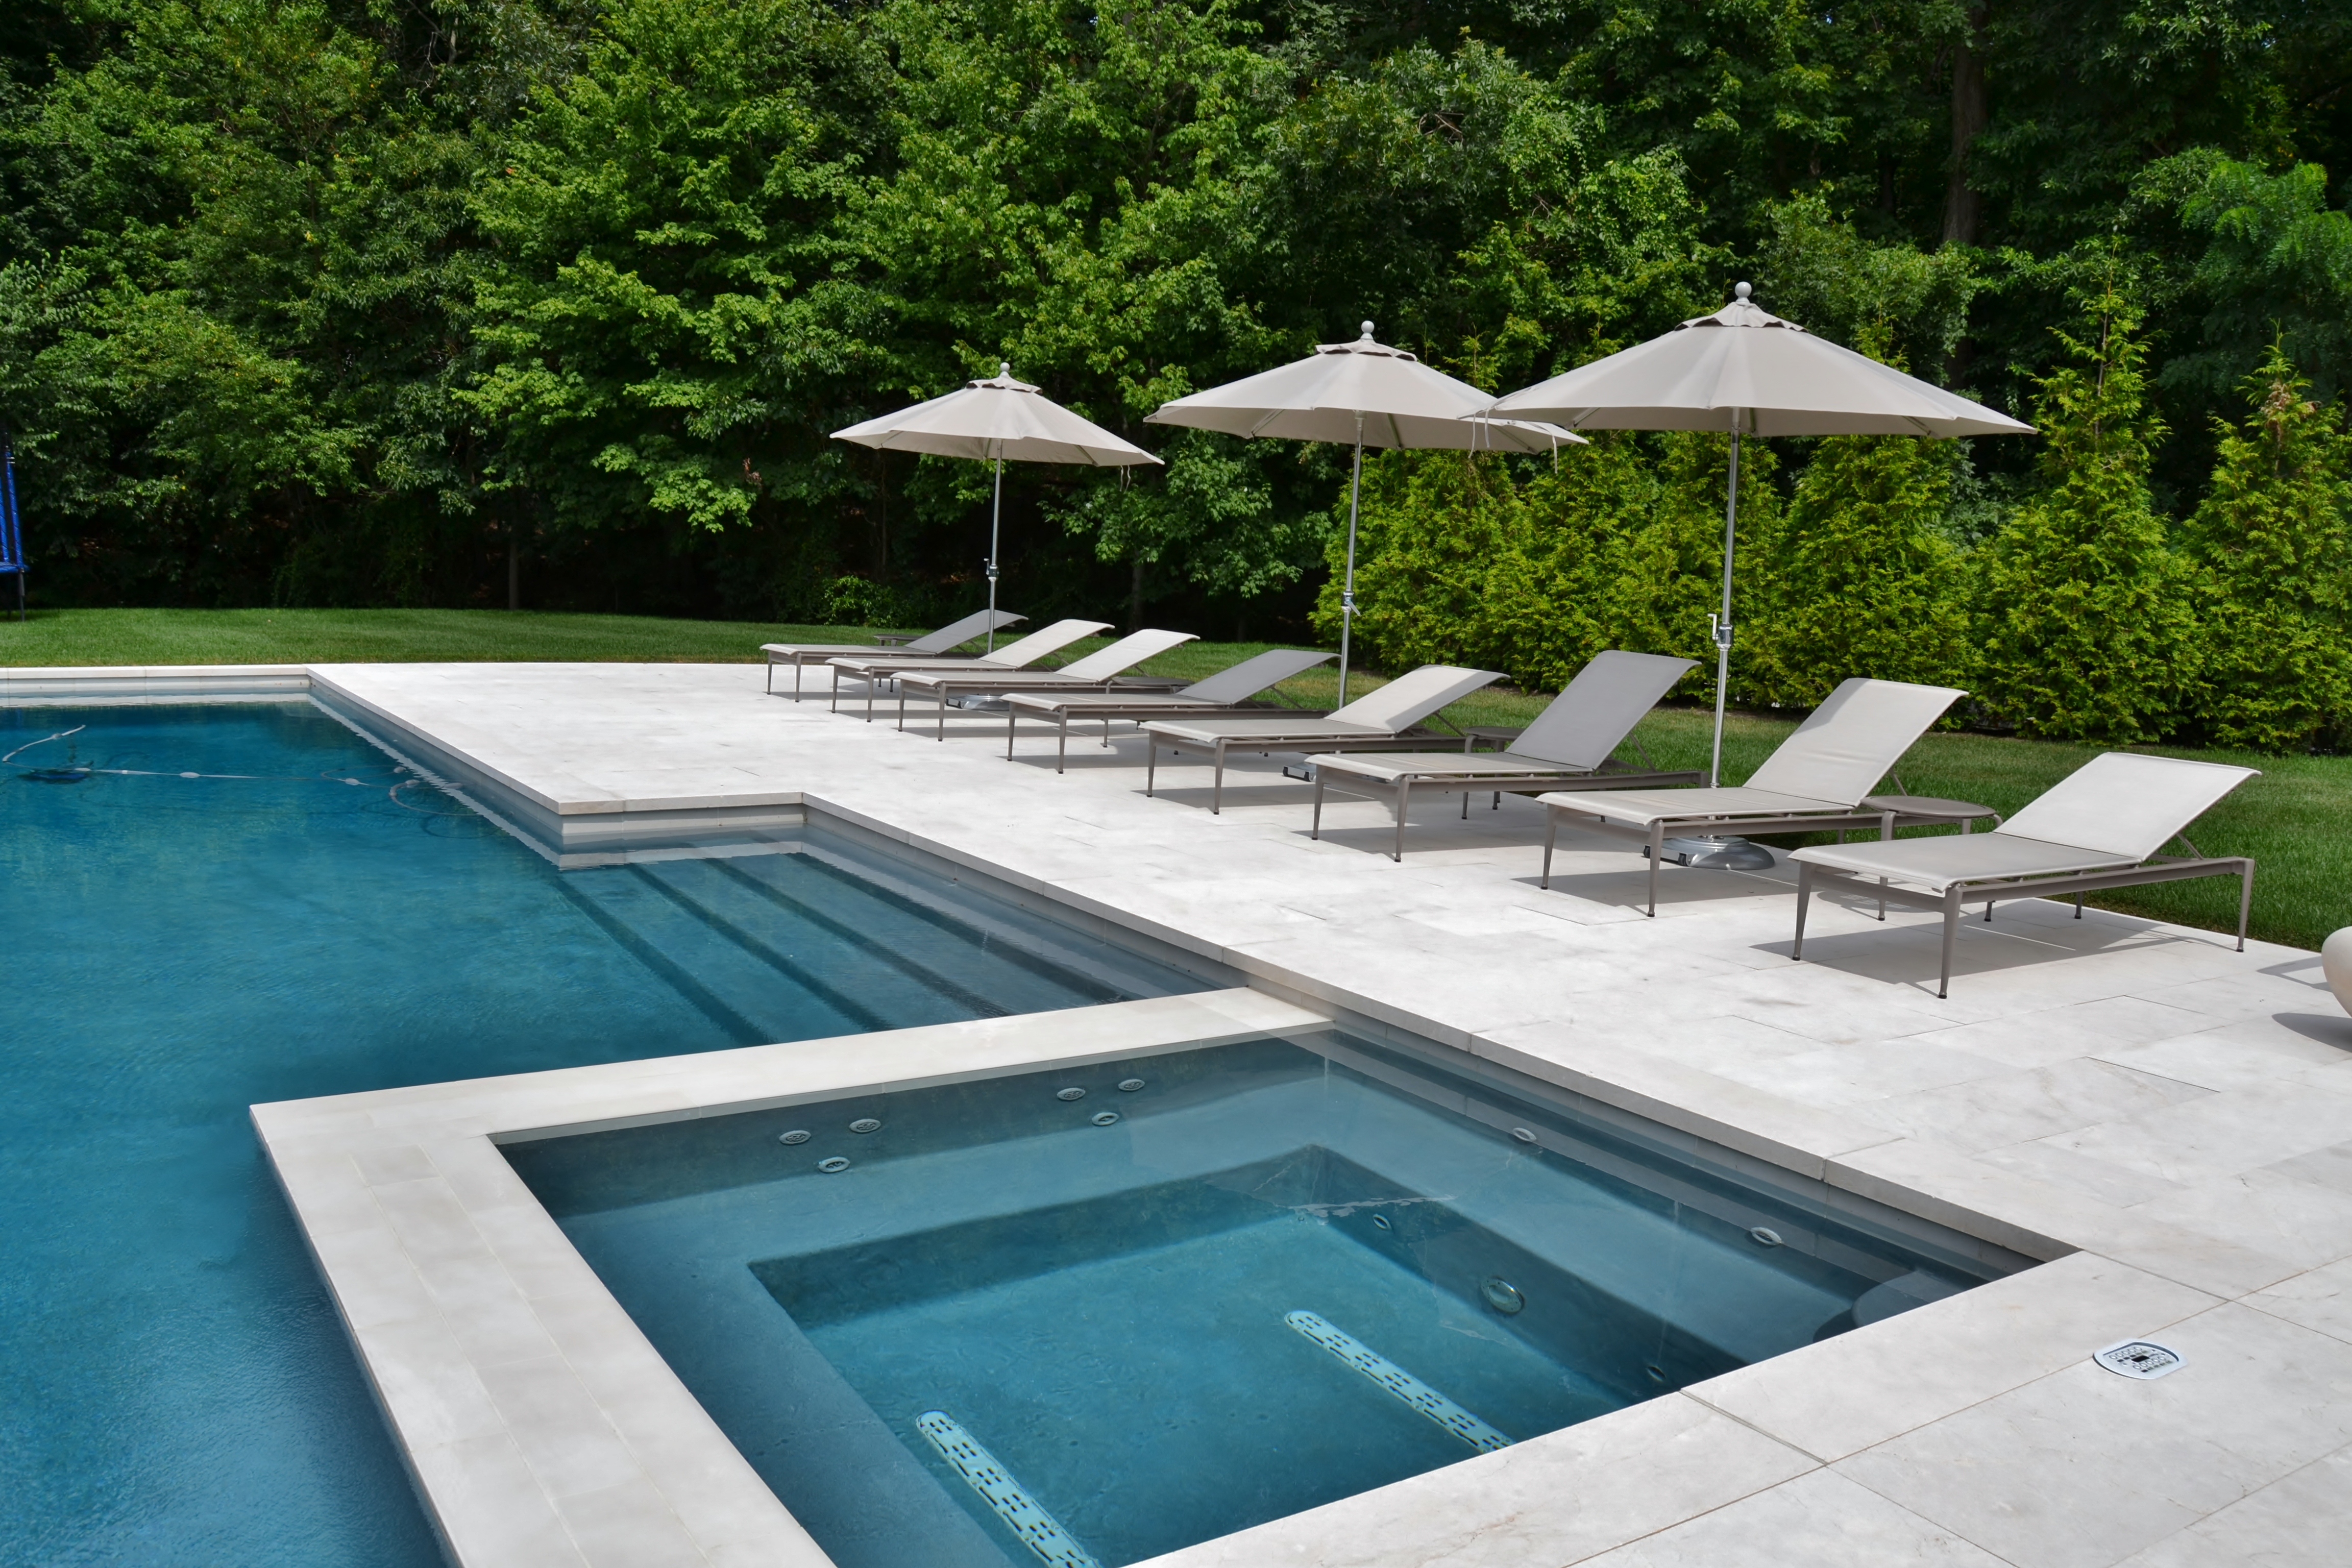 swimming pool and spa design with an elevated patio space equipped with an outdoor kitchen bar area outdoor television and fireplace this backyard is. Interior Design Ideas. Home Design Ideas